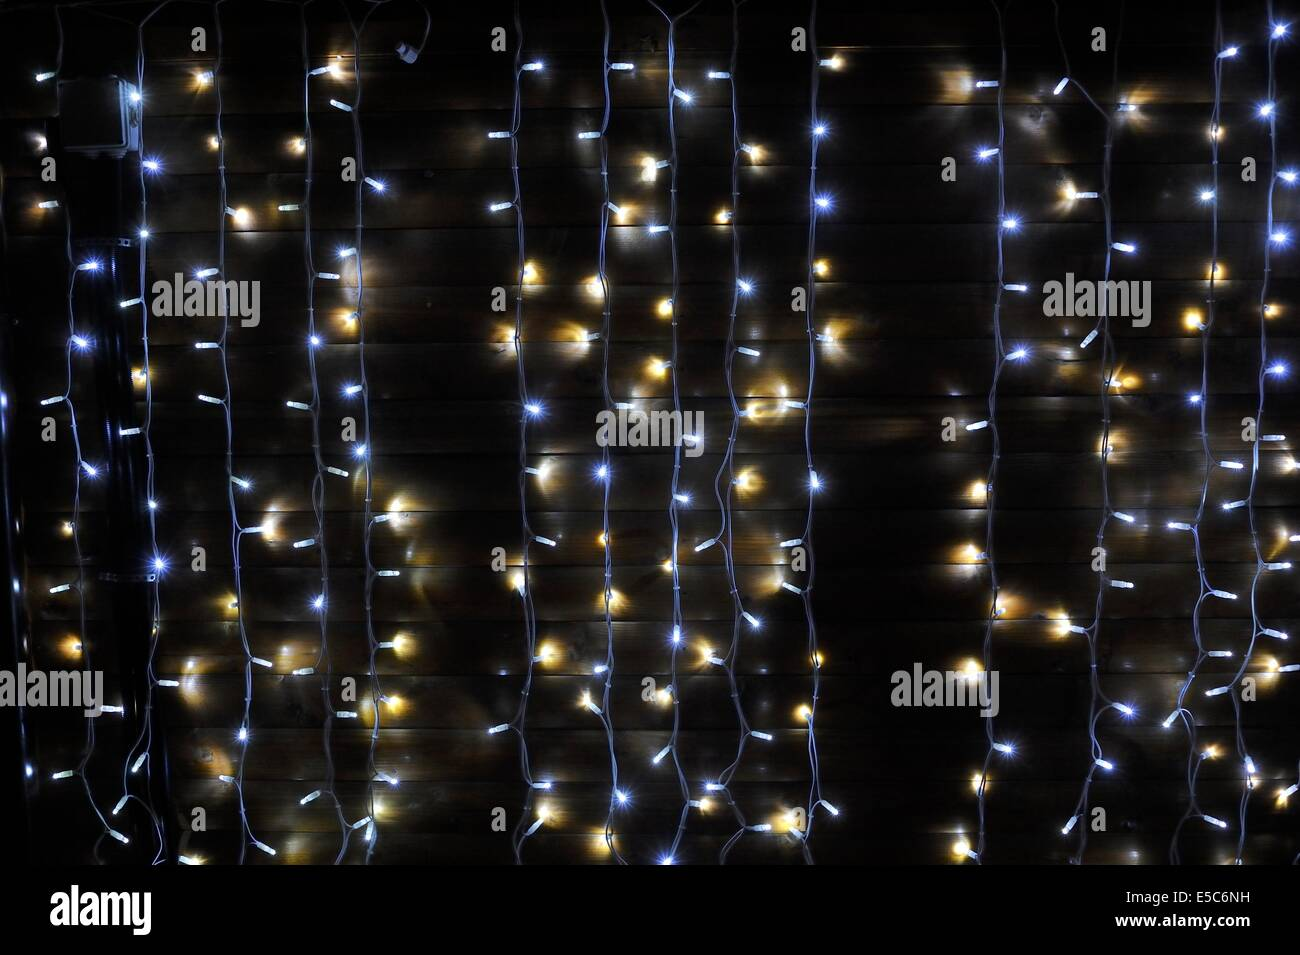 Wall With Christmas Lights : Images of Wall Christmas Lights - Best Christmas Tree Decoration Ideas